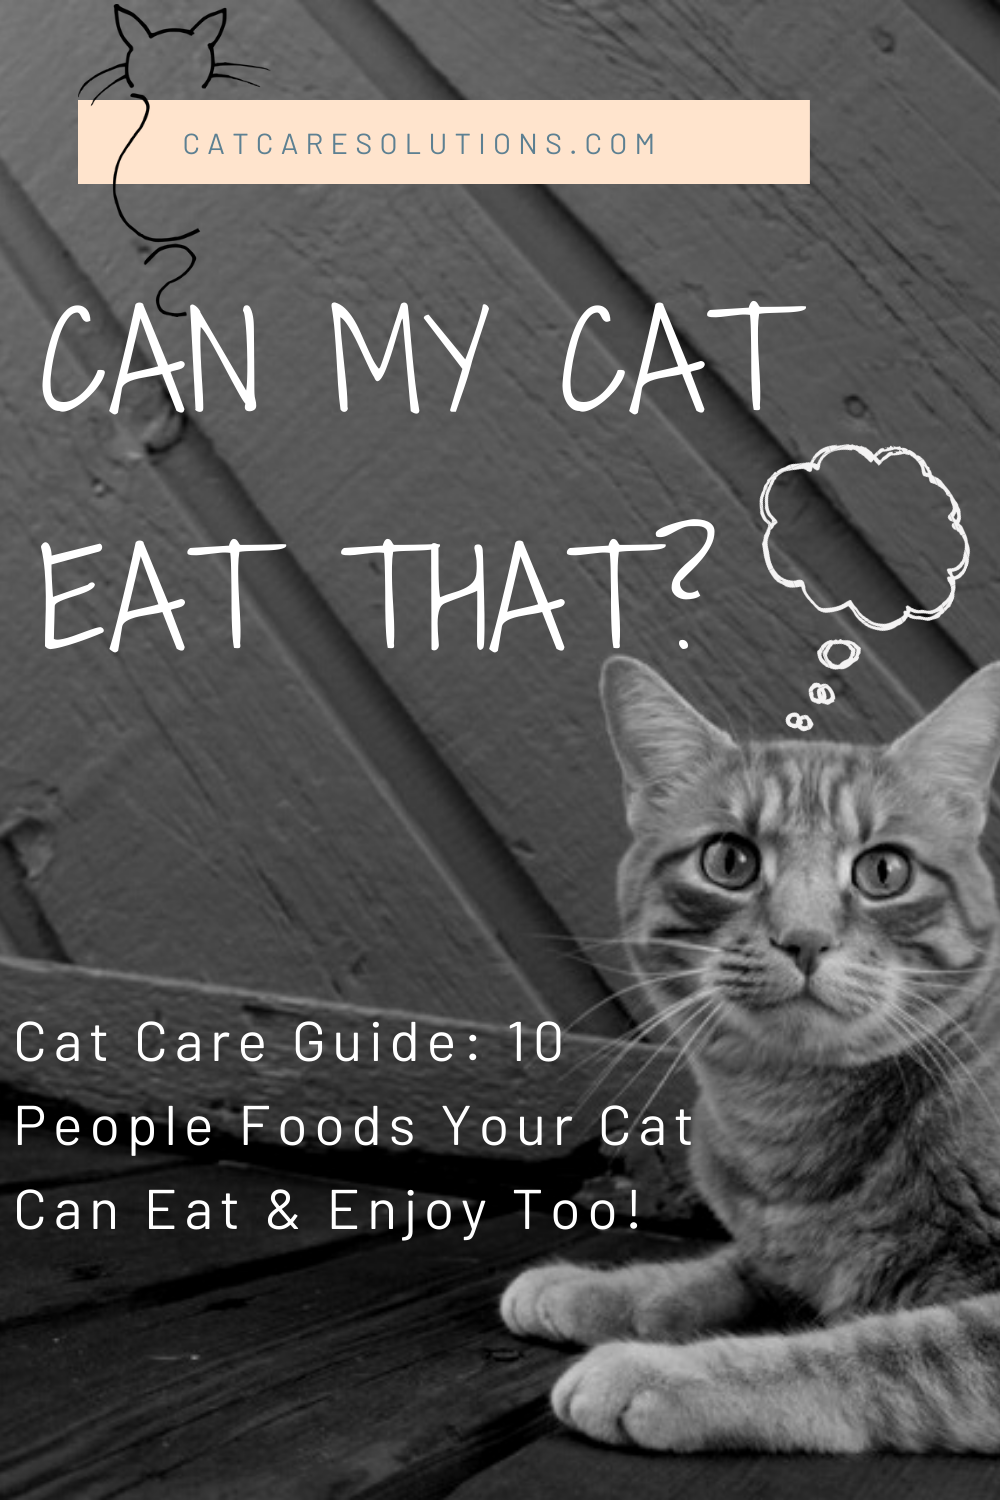 10 Human Foods Cats Can Eat And Enjoy In 2020 Cat Care Human Food For Cats Foods Cats Can Eat